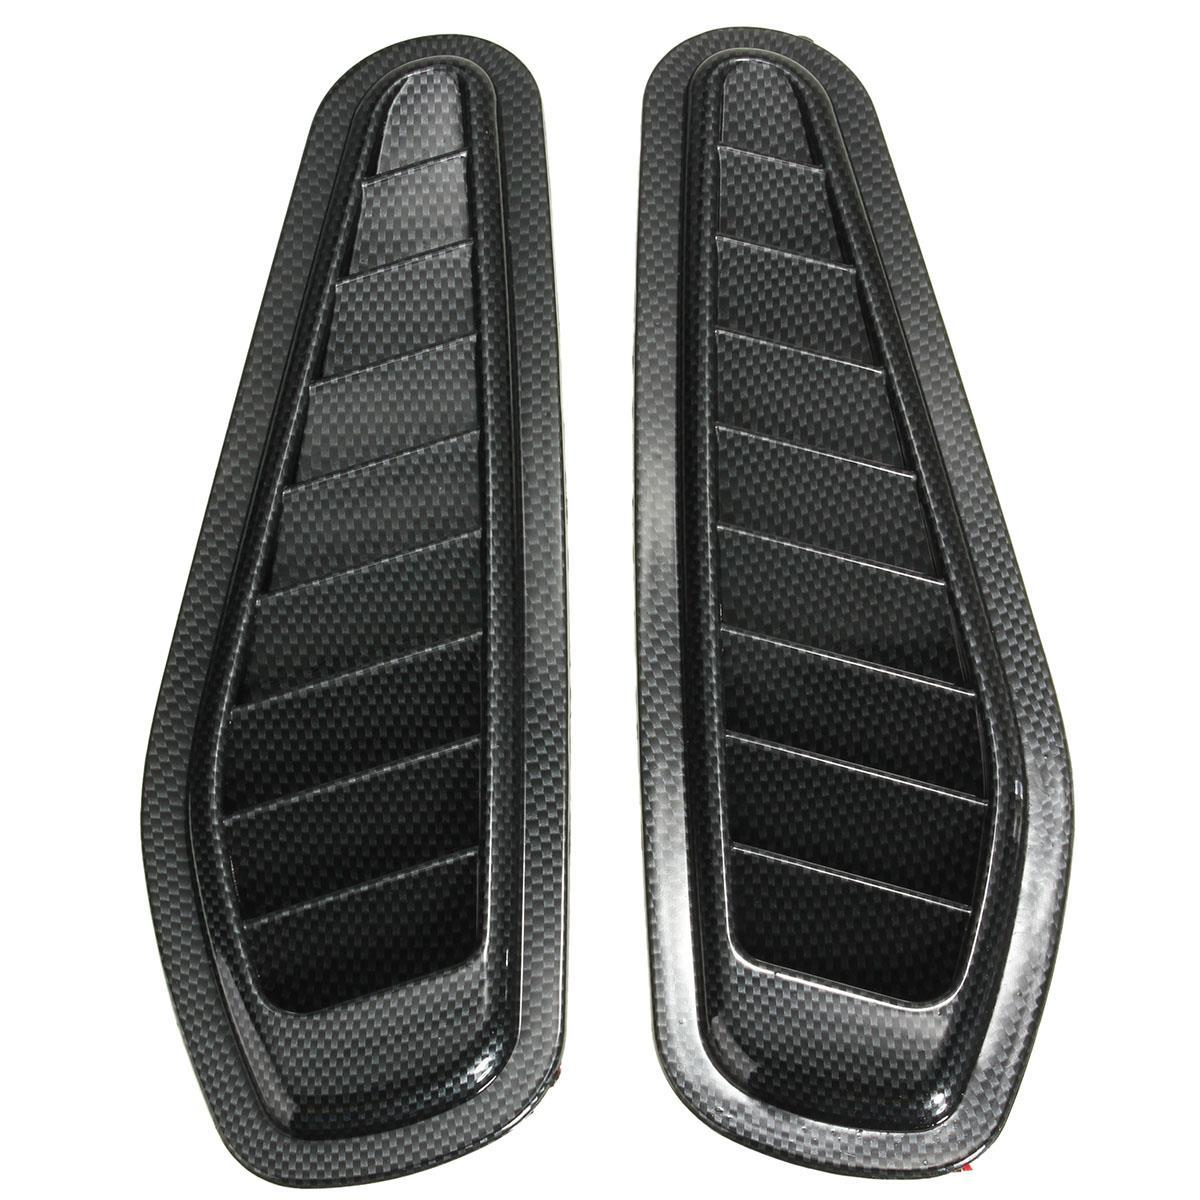 2015 Brand New 2x Car Decorative Air Flow Intake Scoop